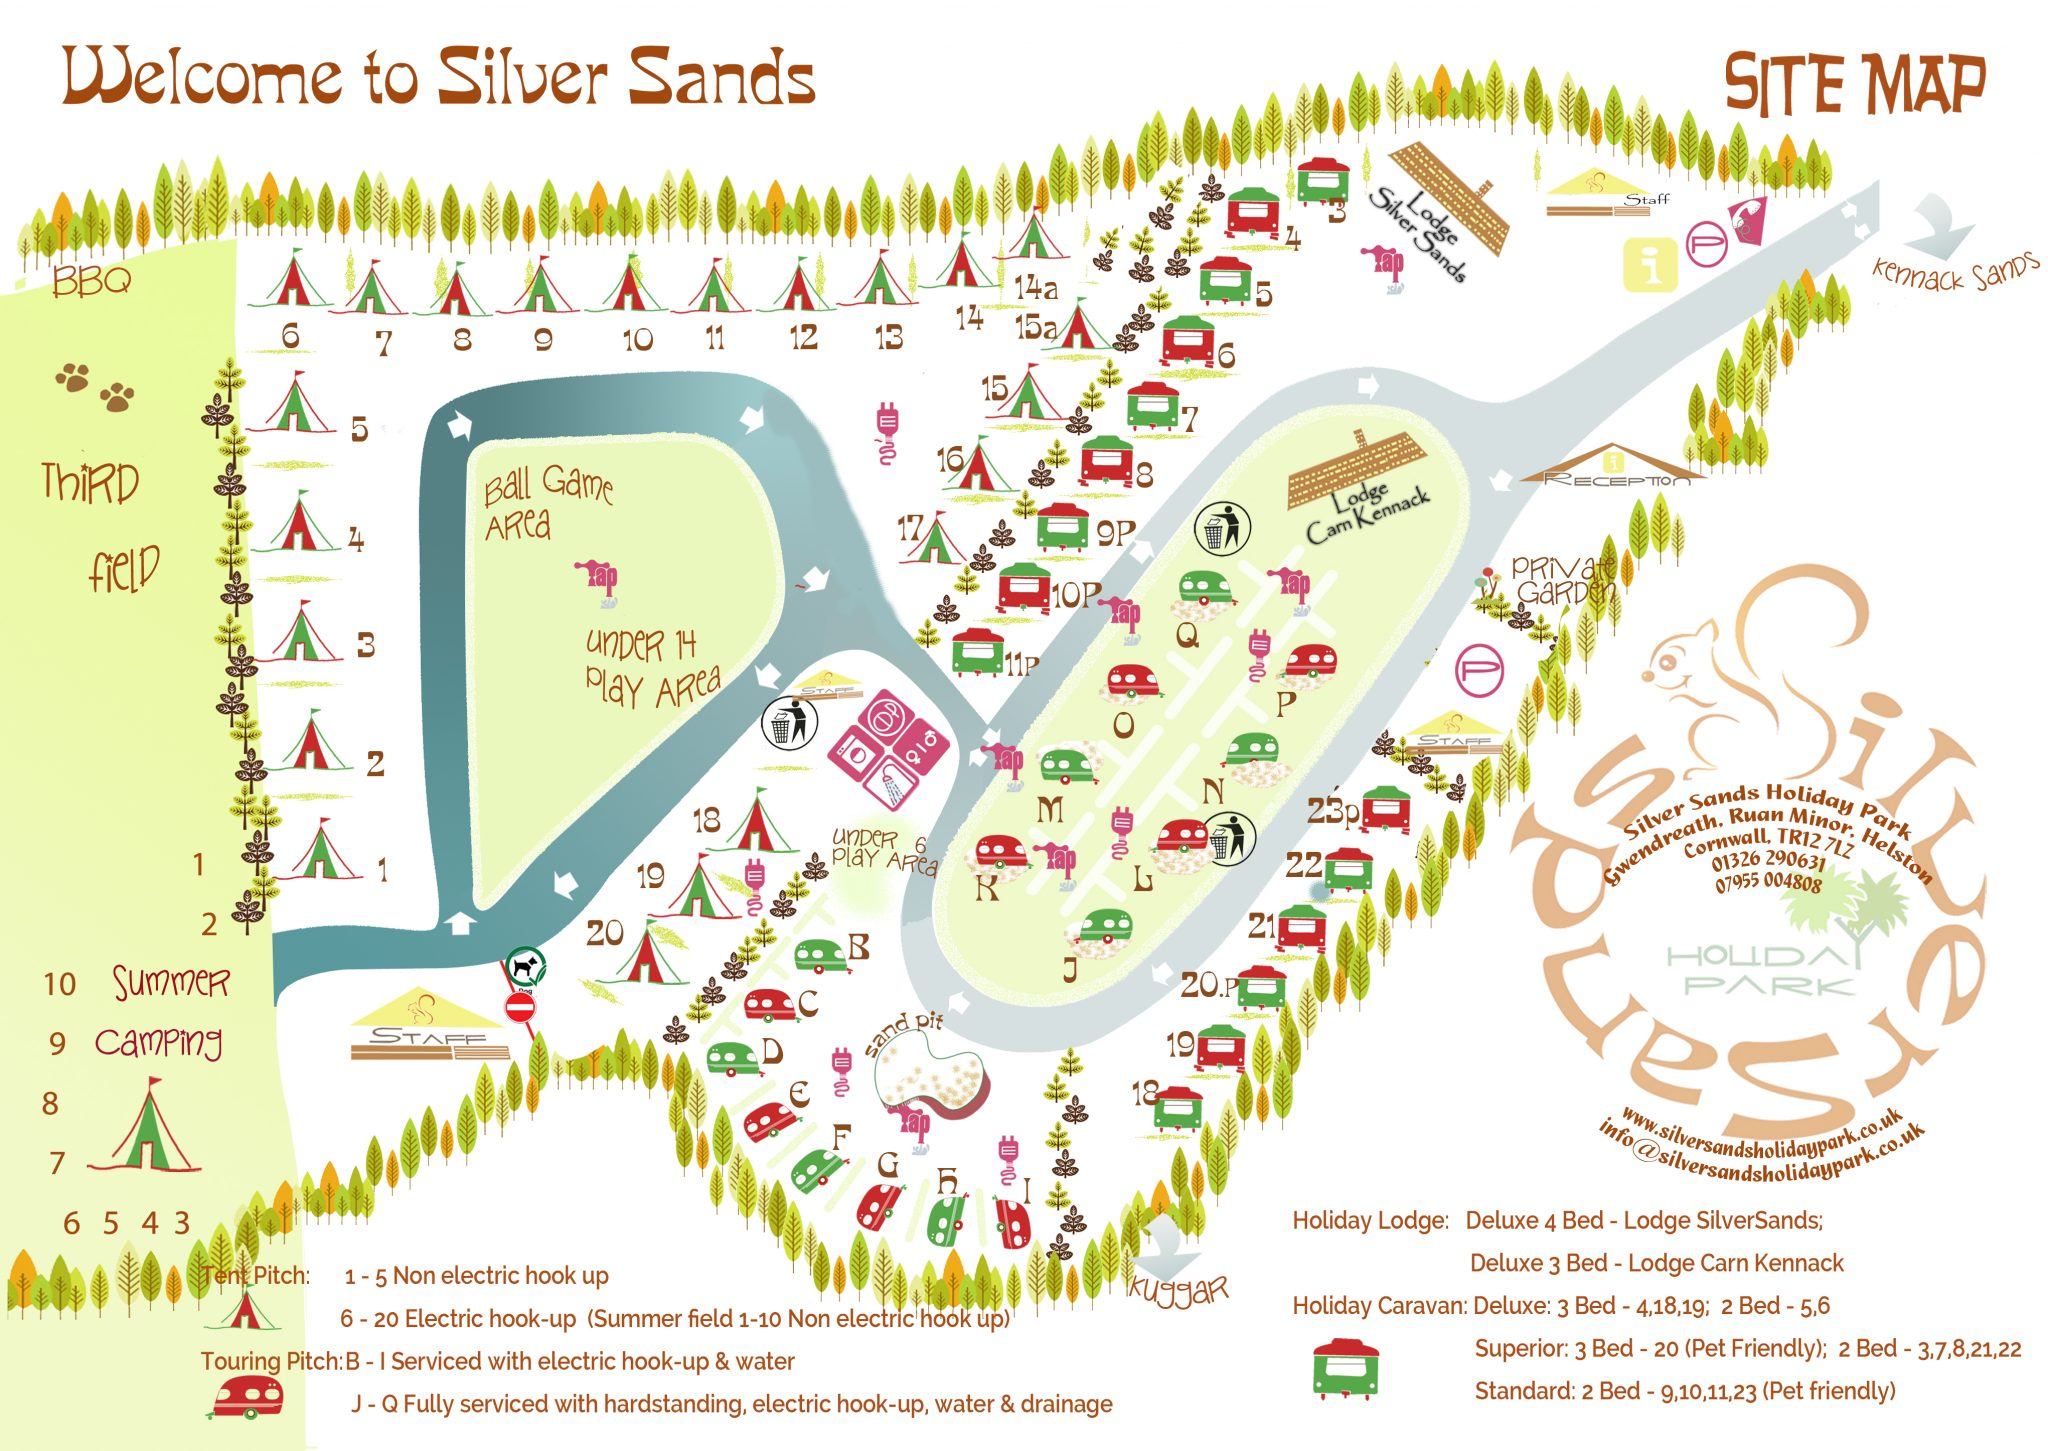 Silver Sands Holiday Park Site Plan 2018